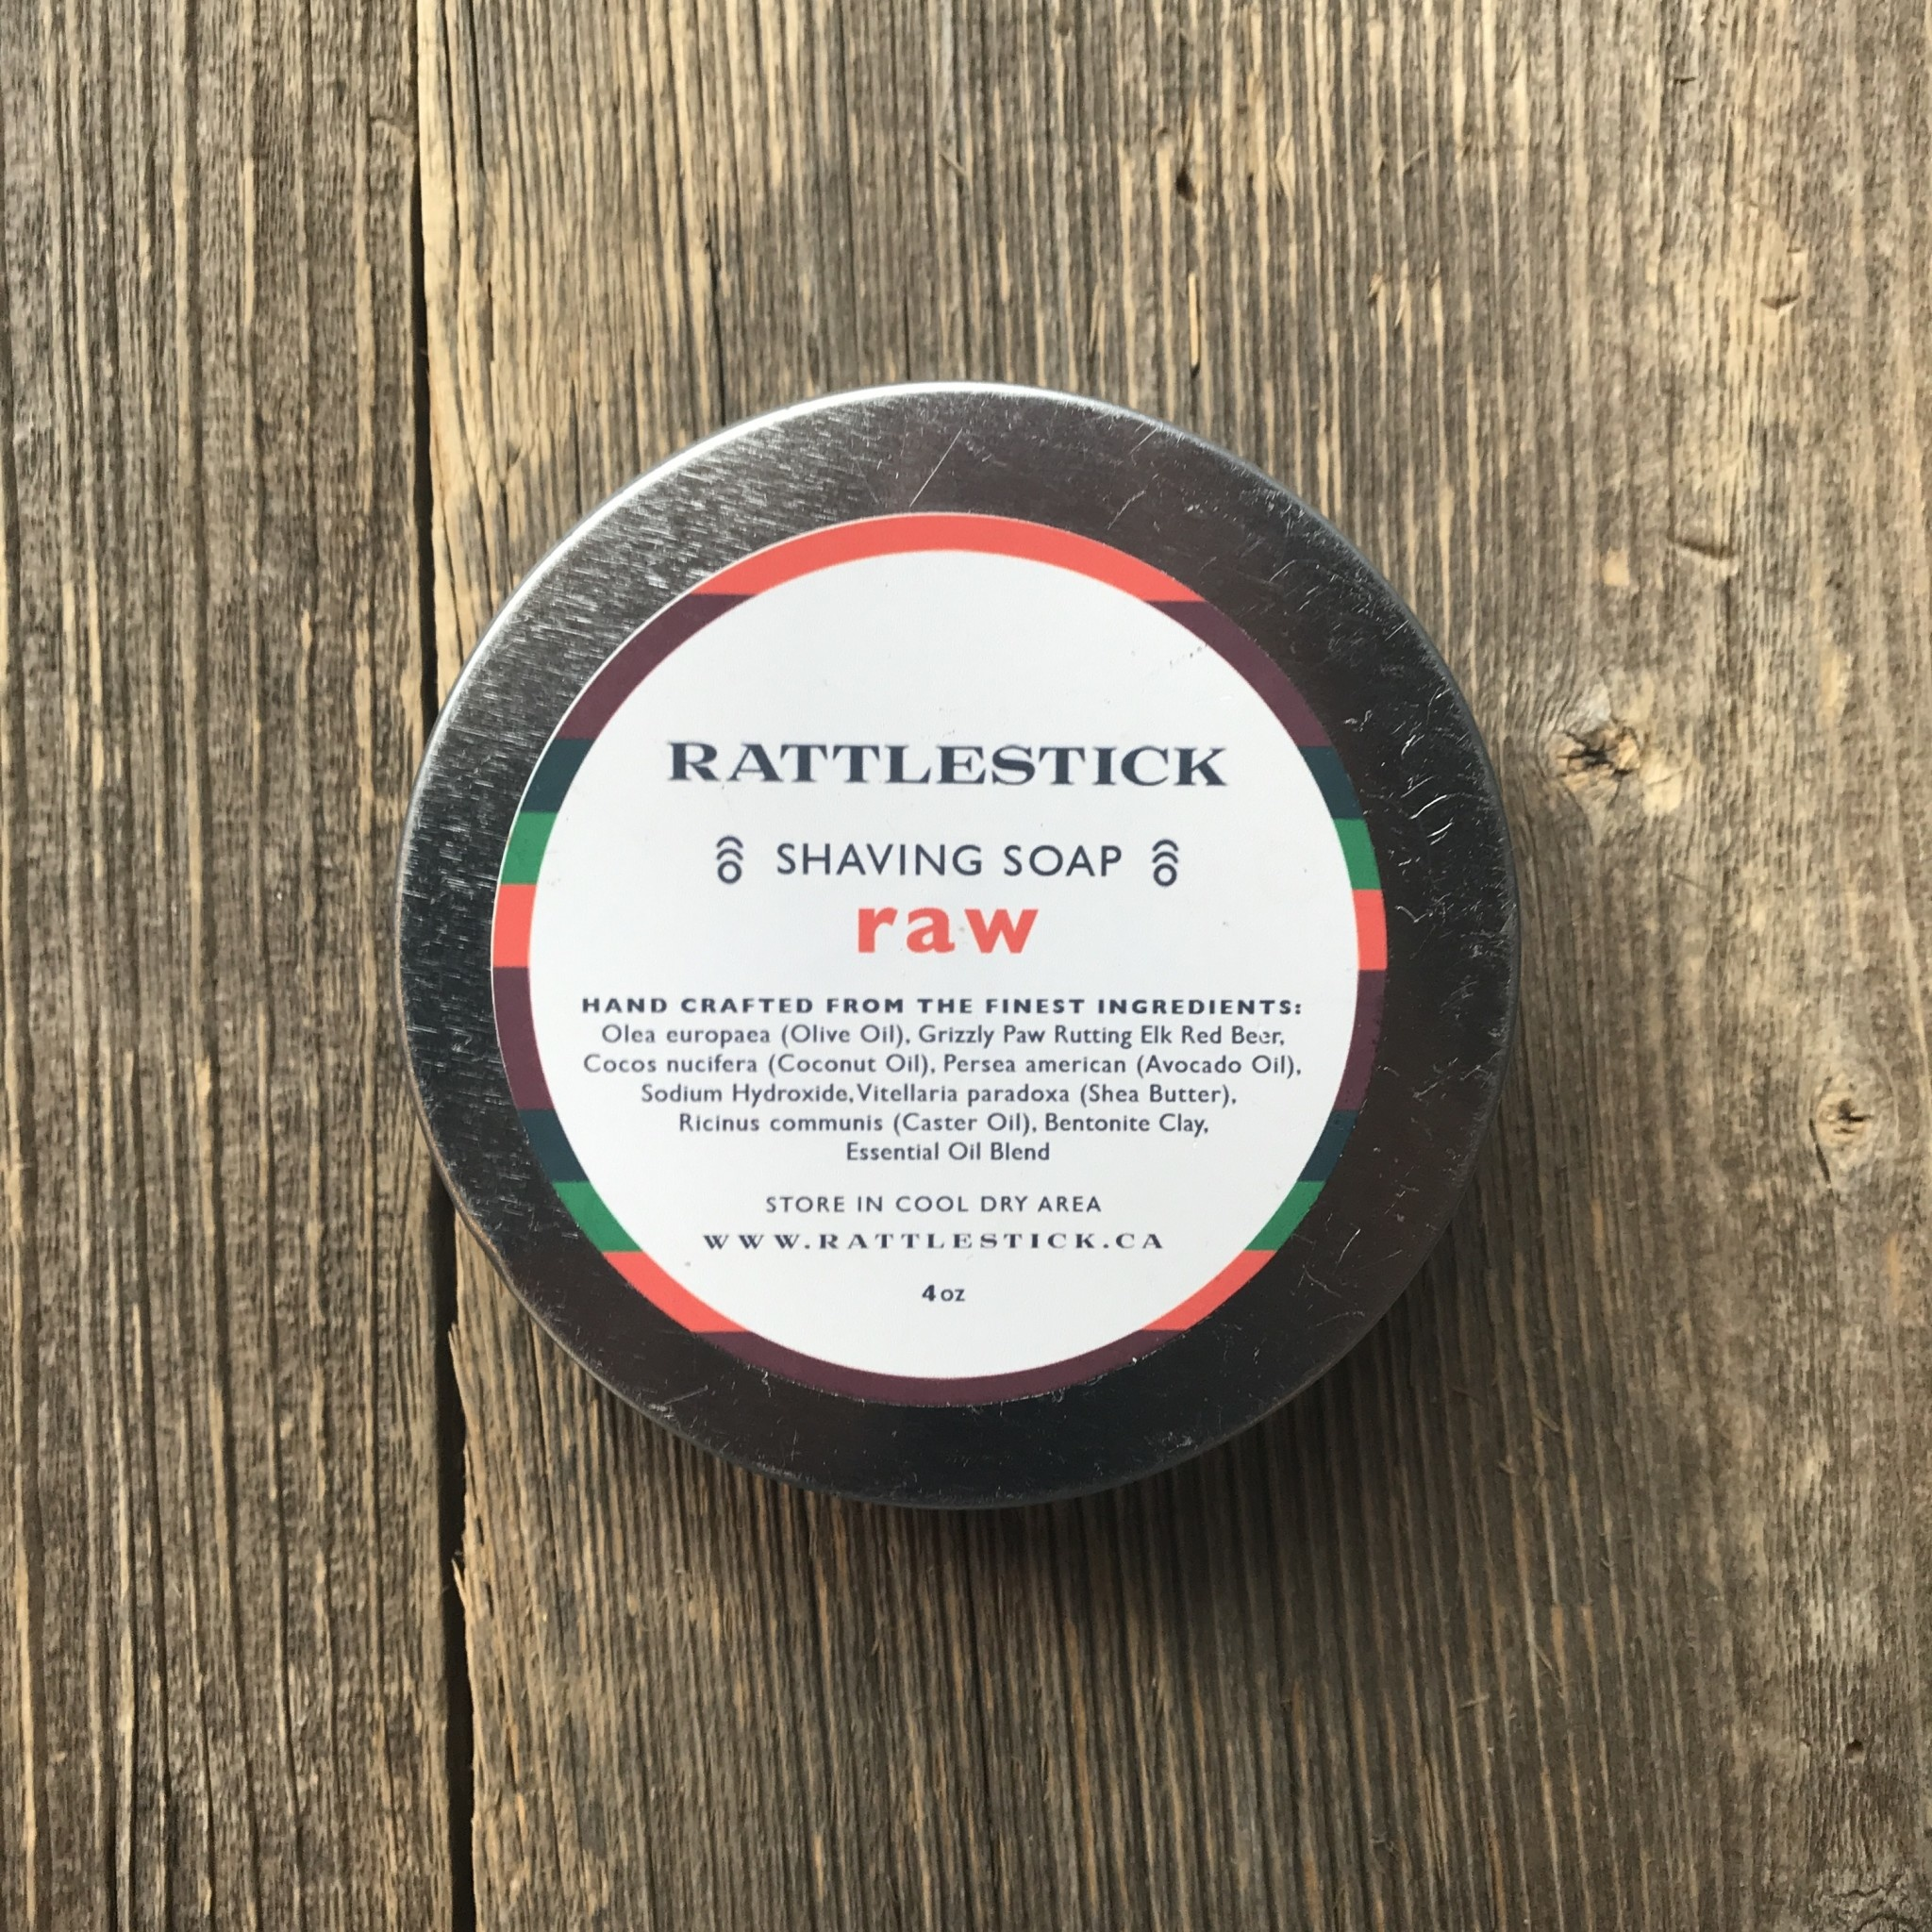 Rattlestick All Natural Hand Made Beer Shaving Soap